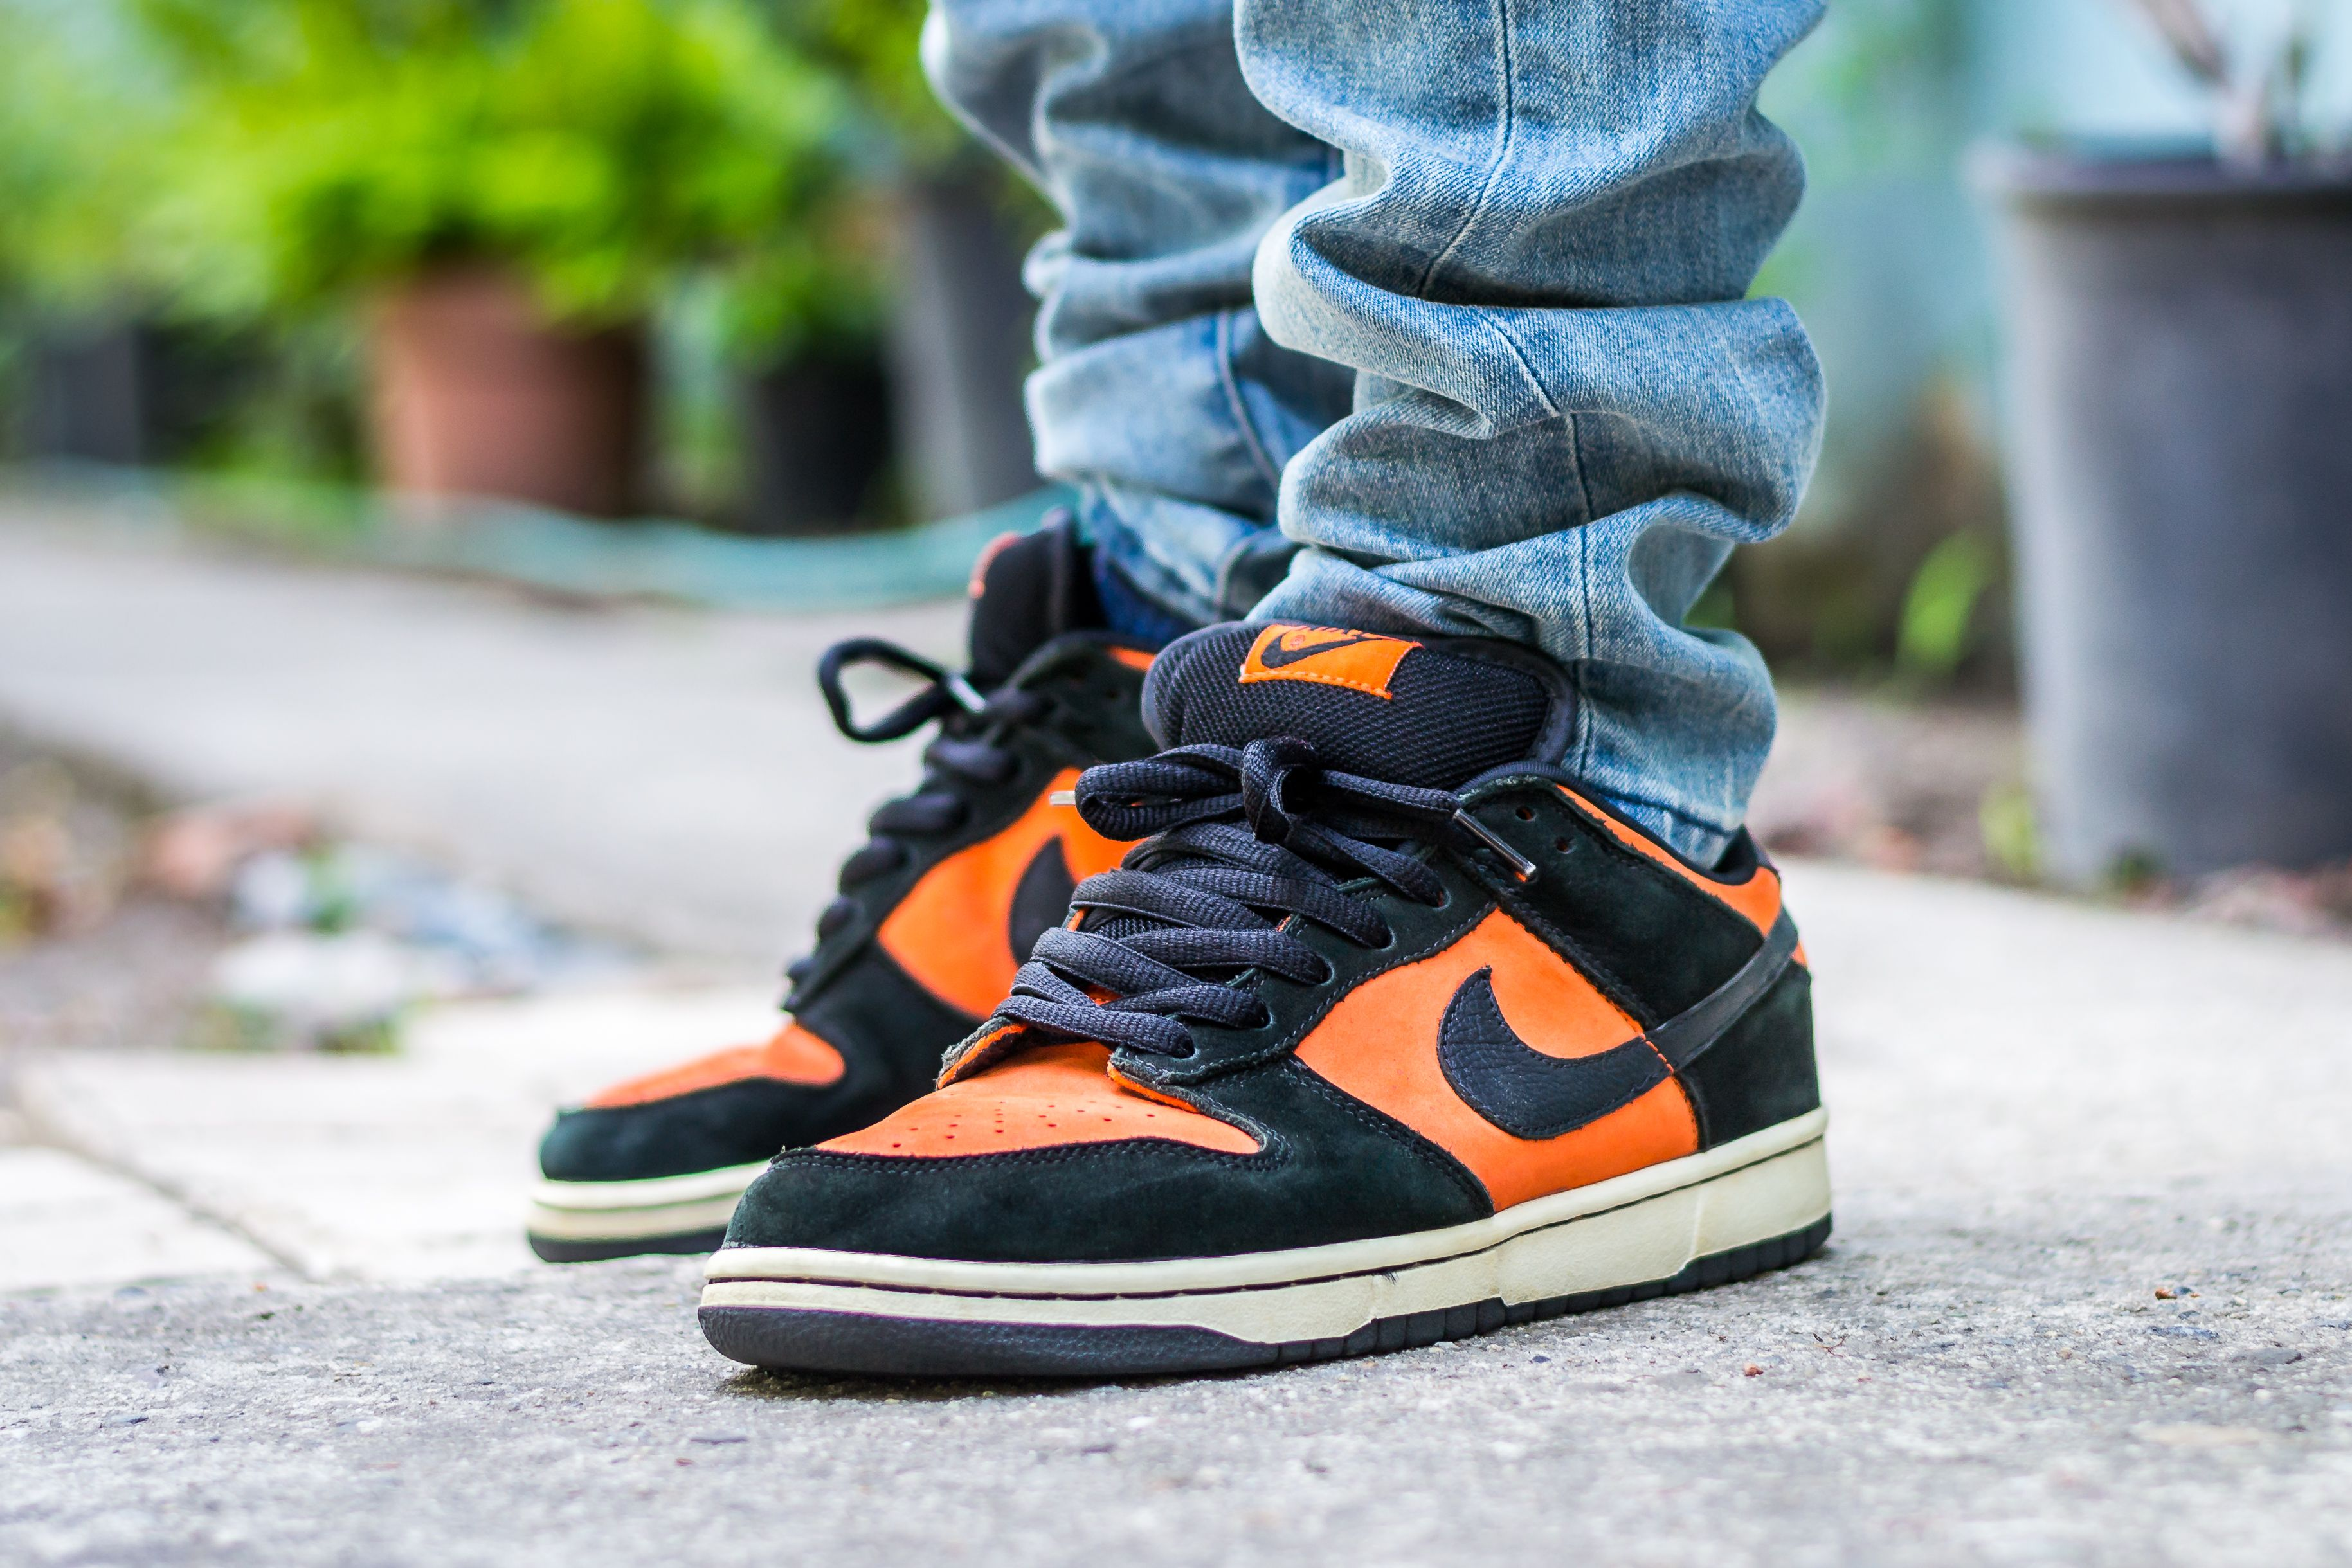 Nike Dunk Low SB Flash On Feet Sneaker Review | DS